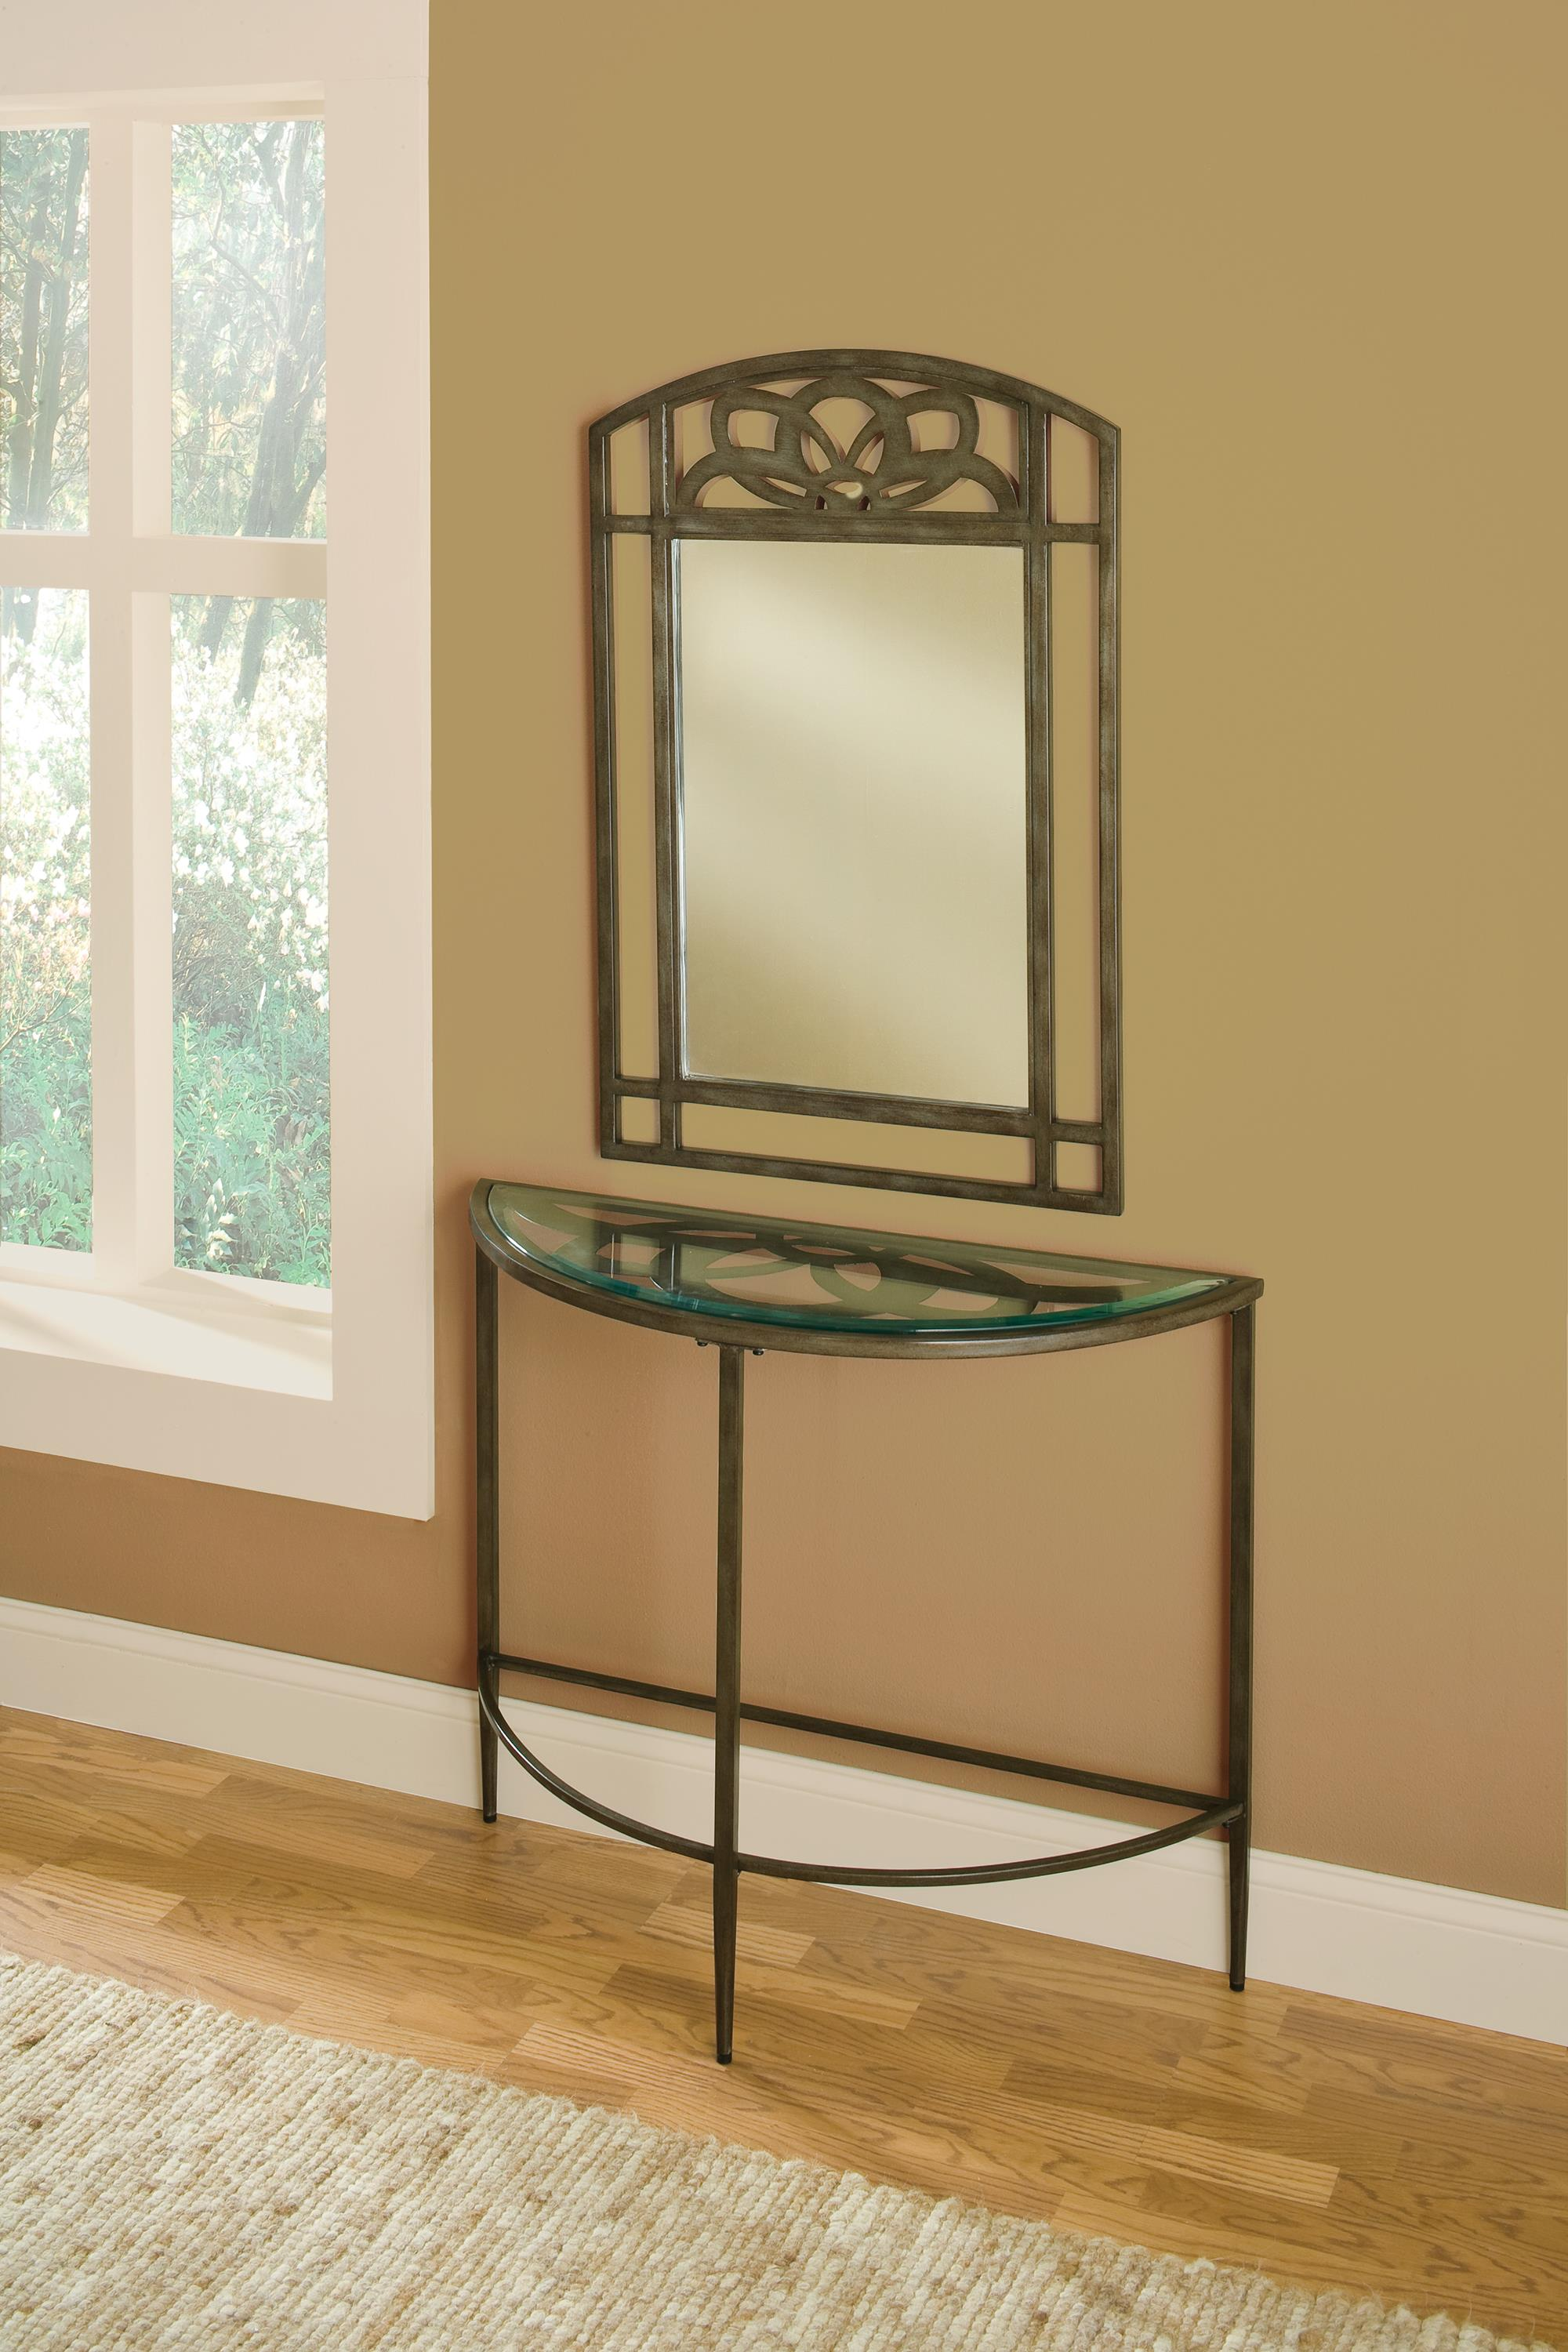 Hillsdale Marsala Console Table and Mirror - Item Number: 5497OTS